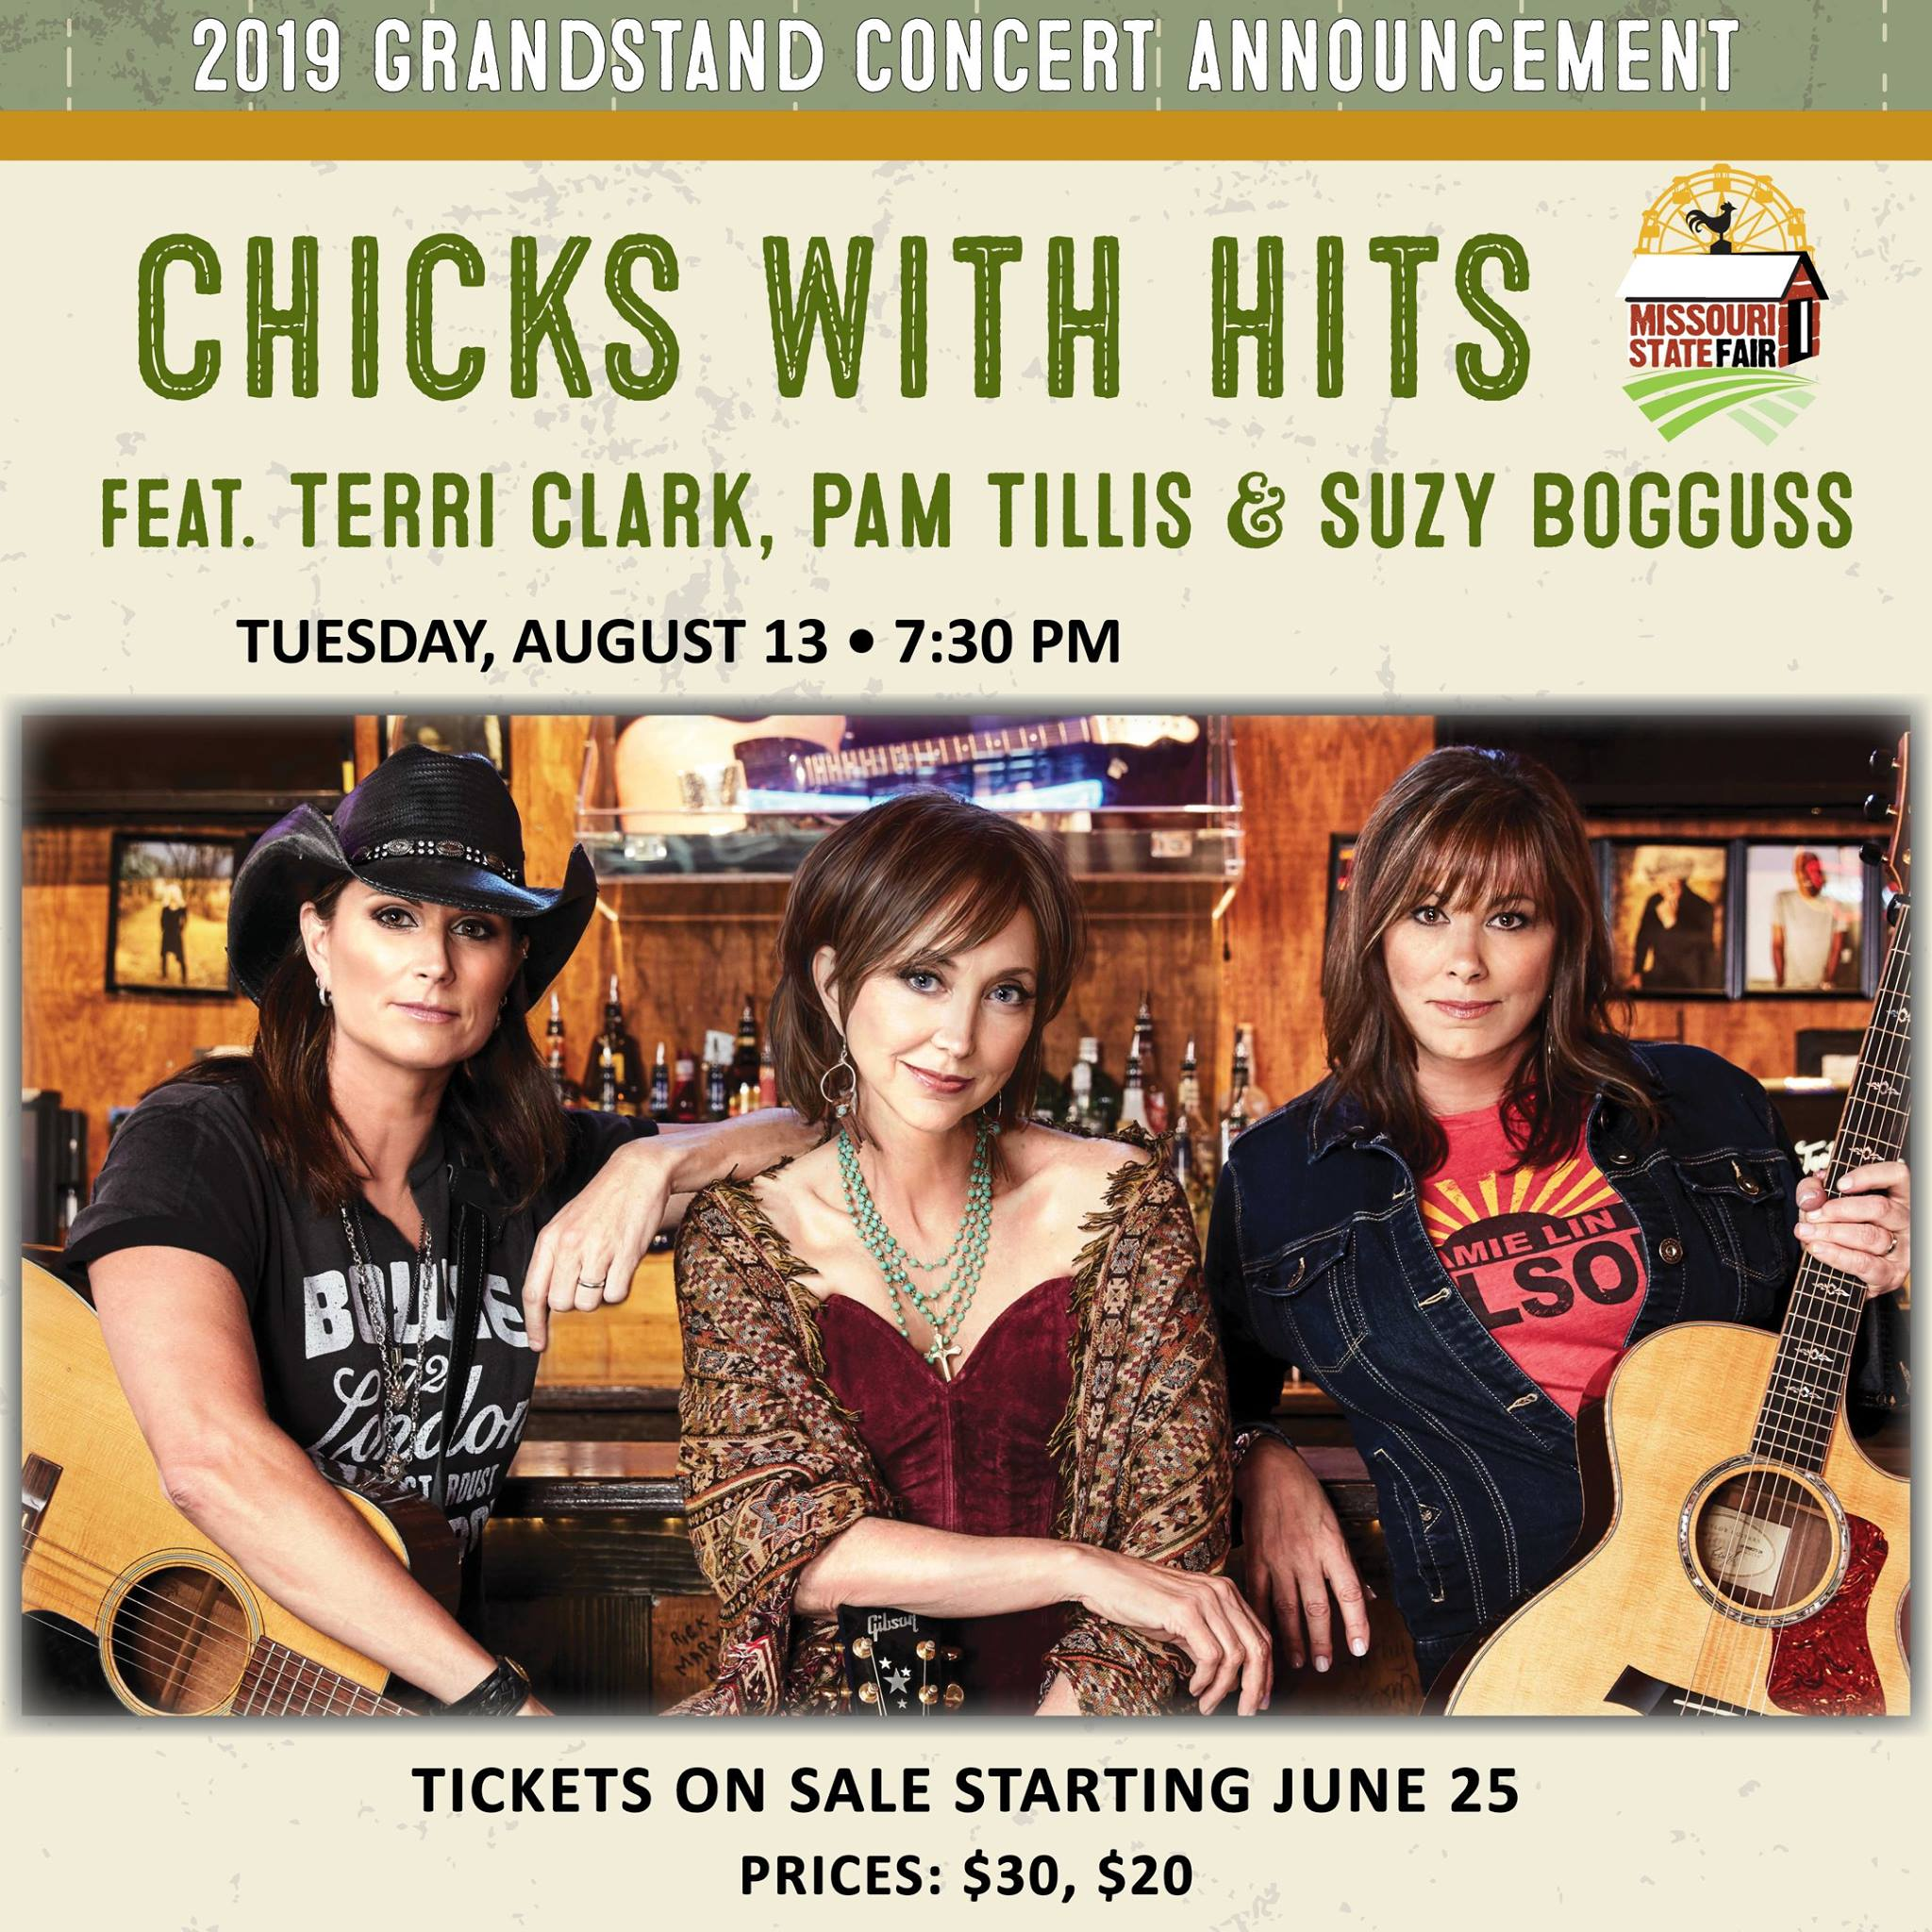 'Chicks with Hits' added to Missouri State Fair concert series